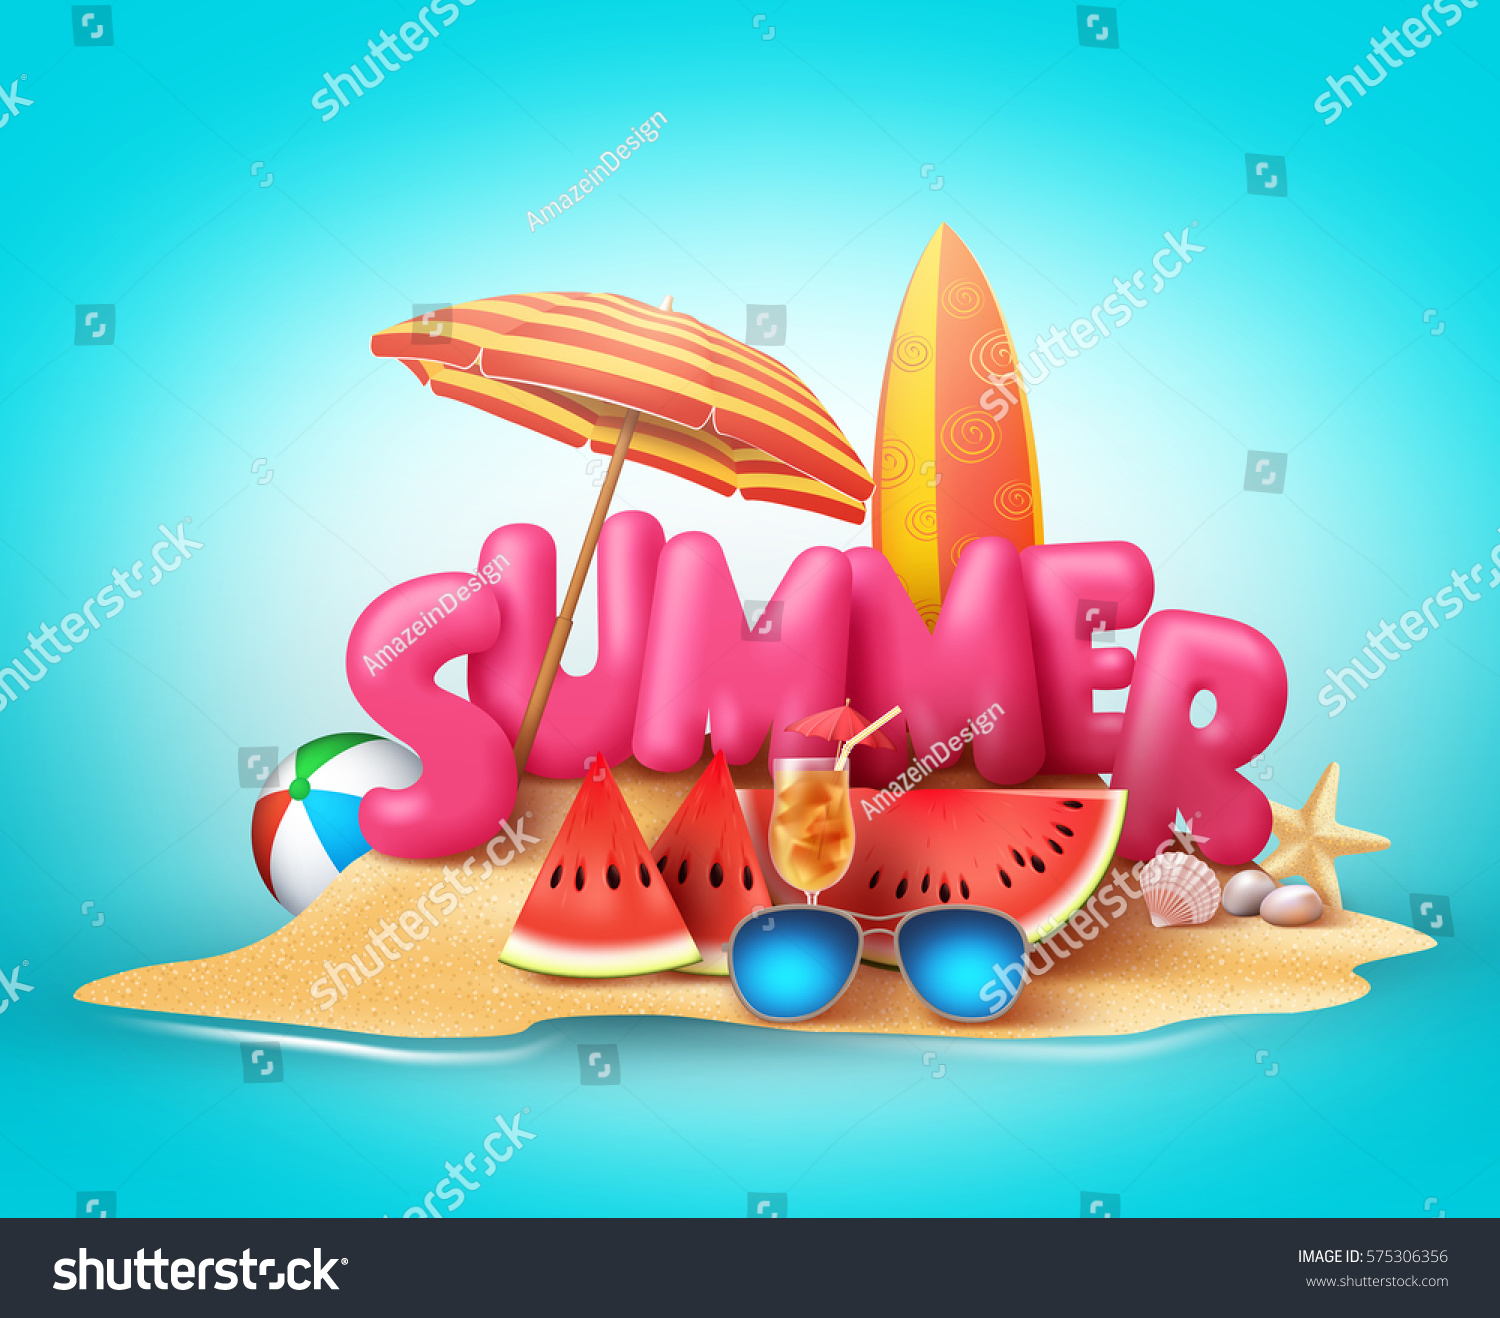 Design vector banner - Summer Beach Vector Banner Design Summer 3d Text In The Sand With Colorful Elements Like